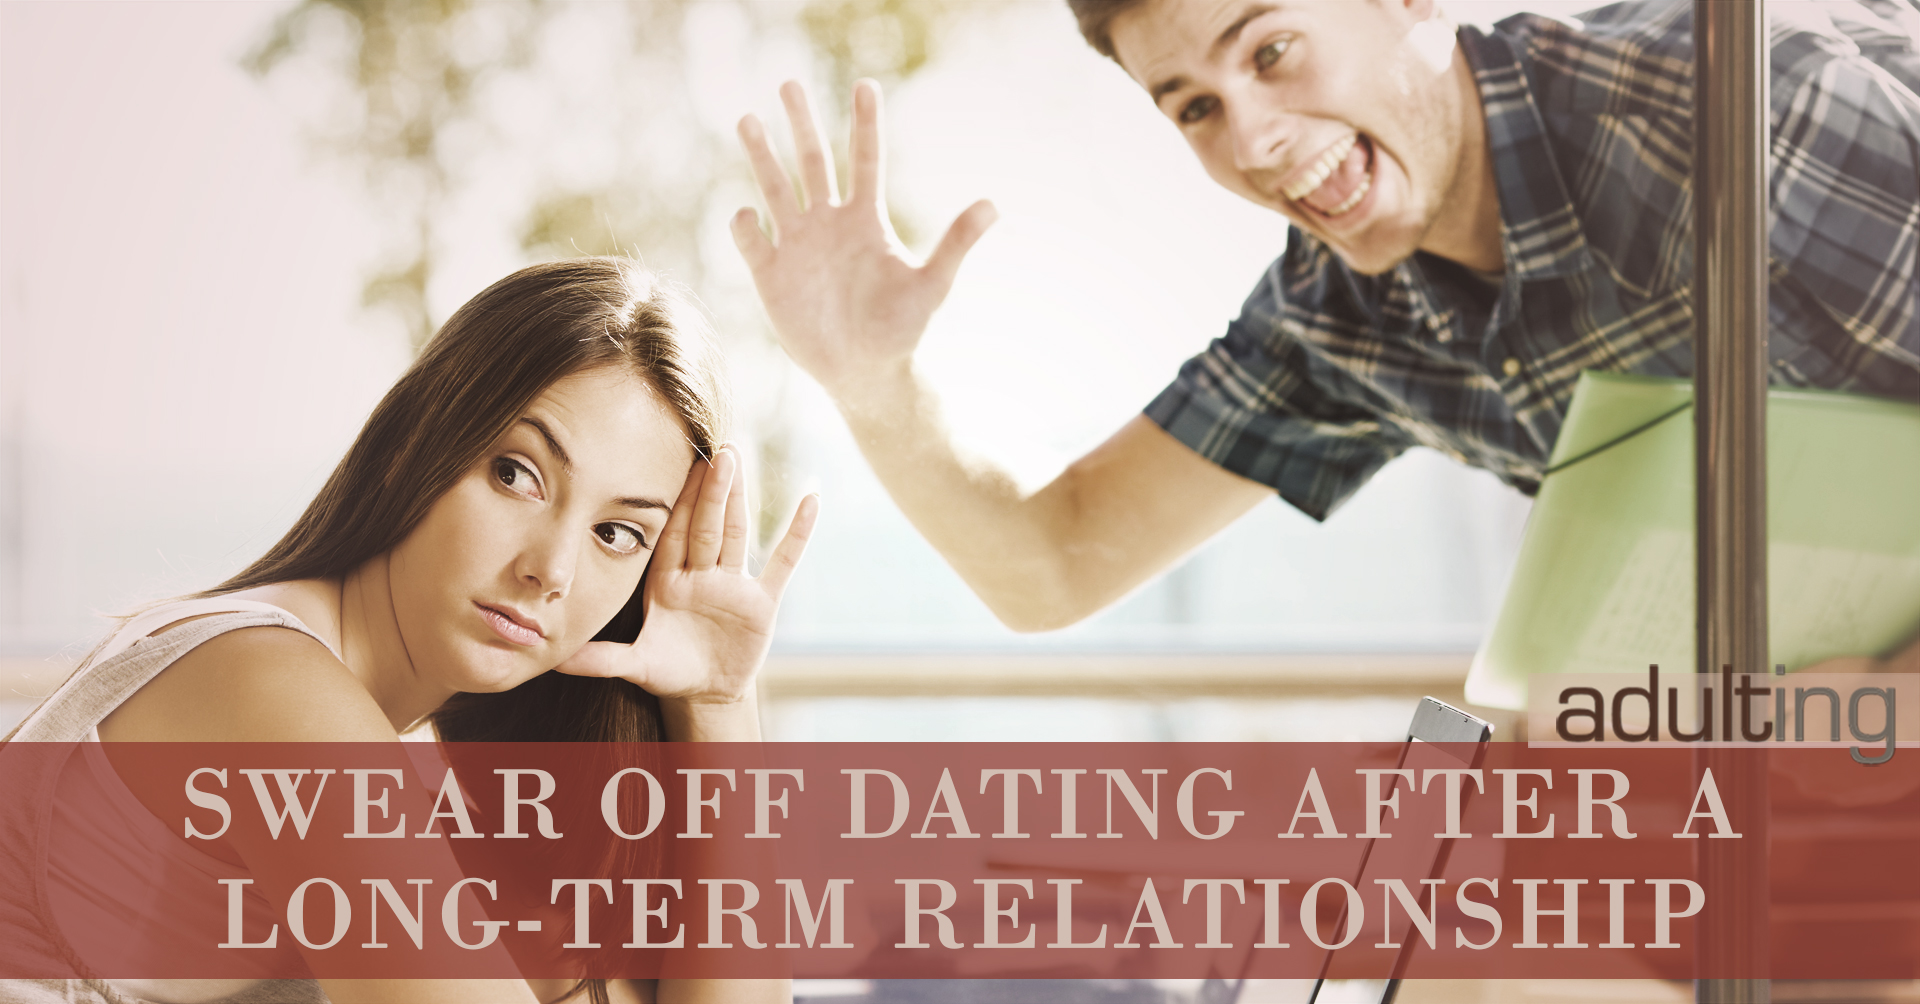 How long after a relationship to start dating